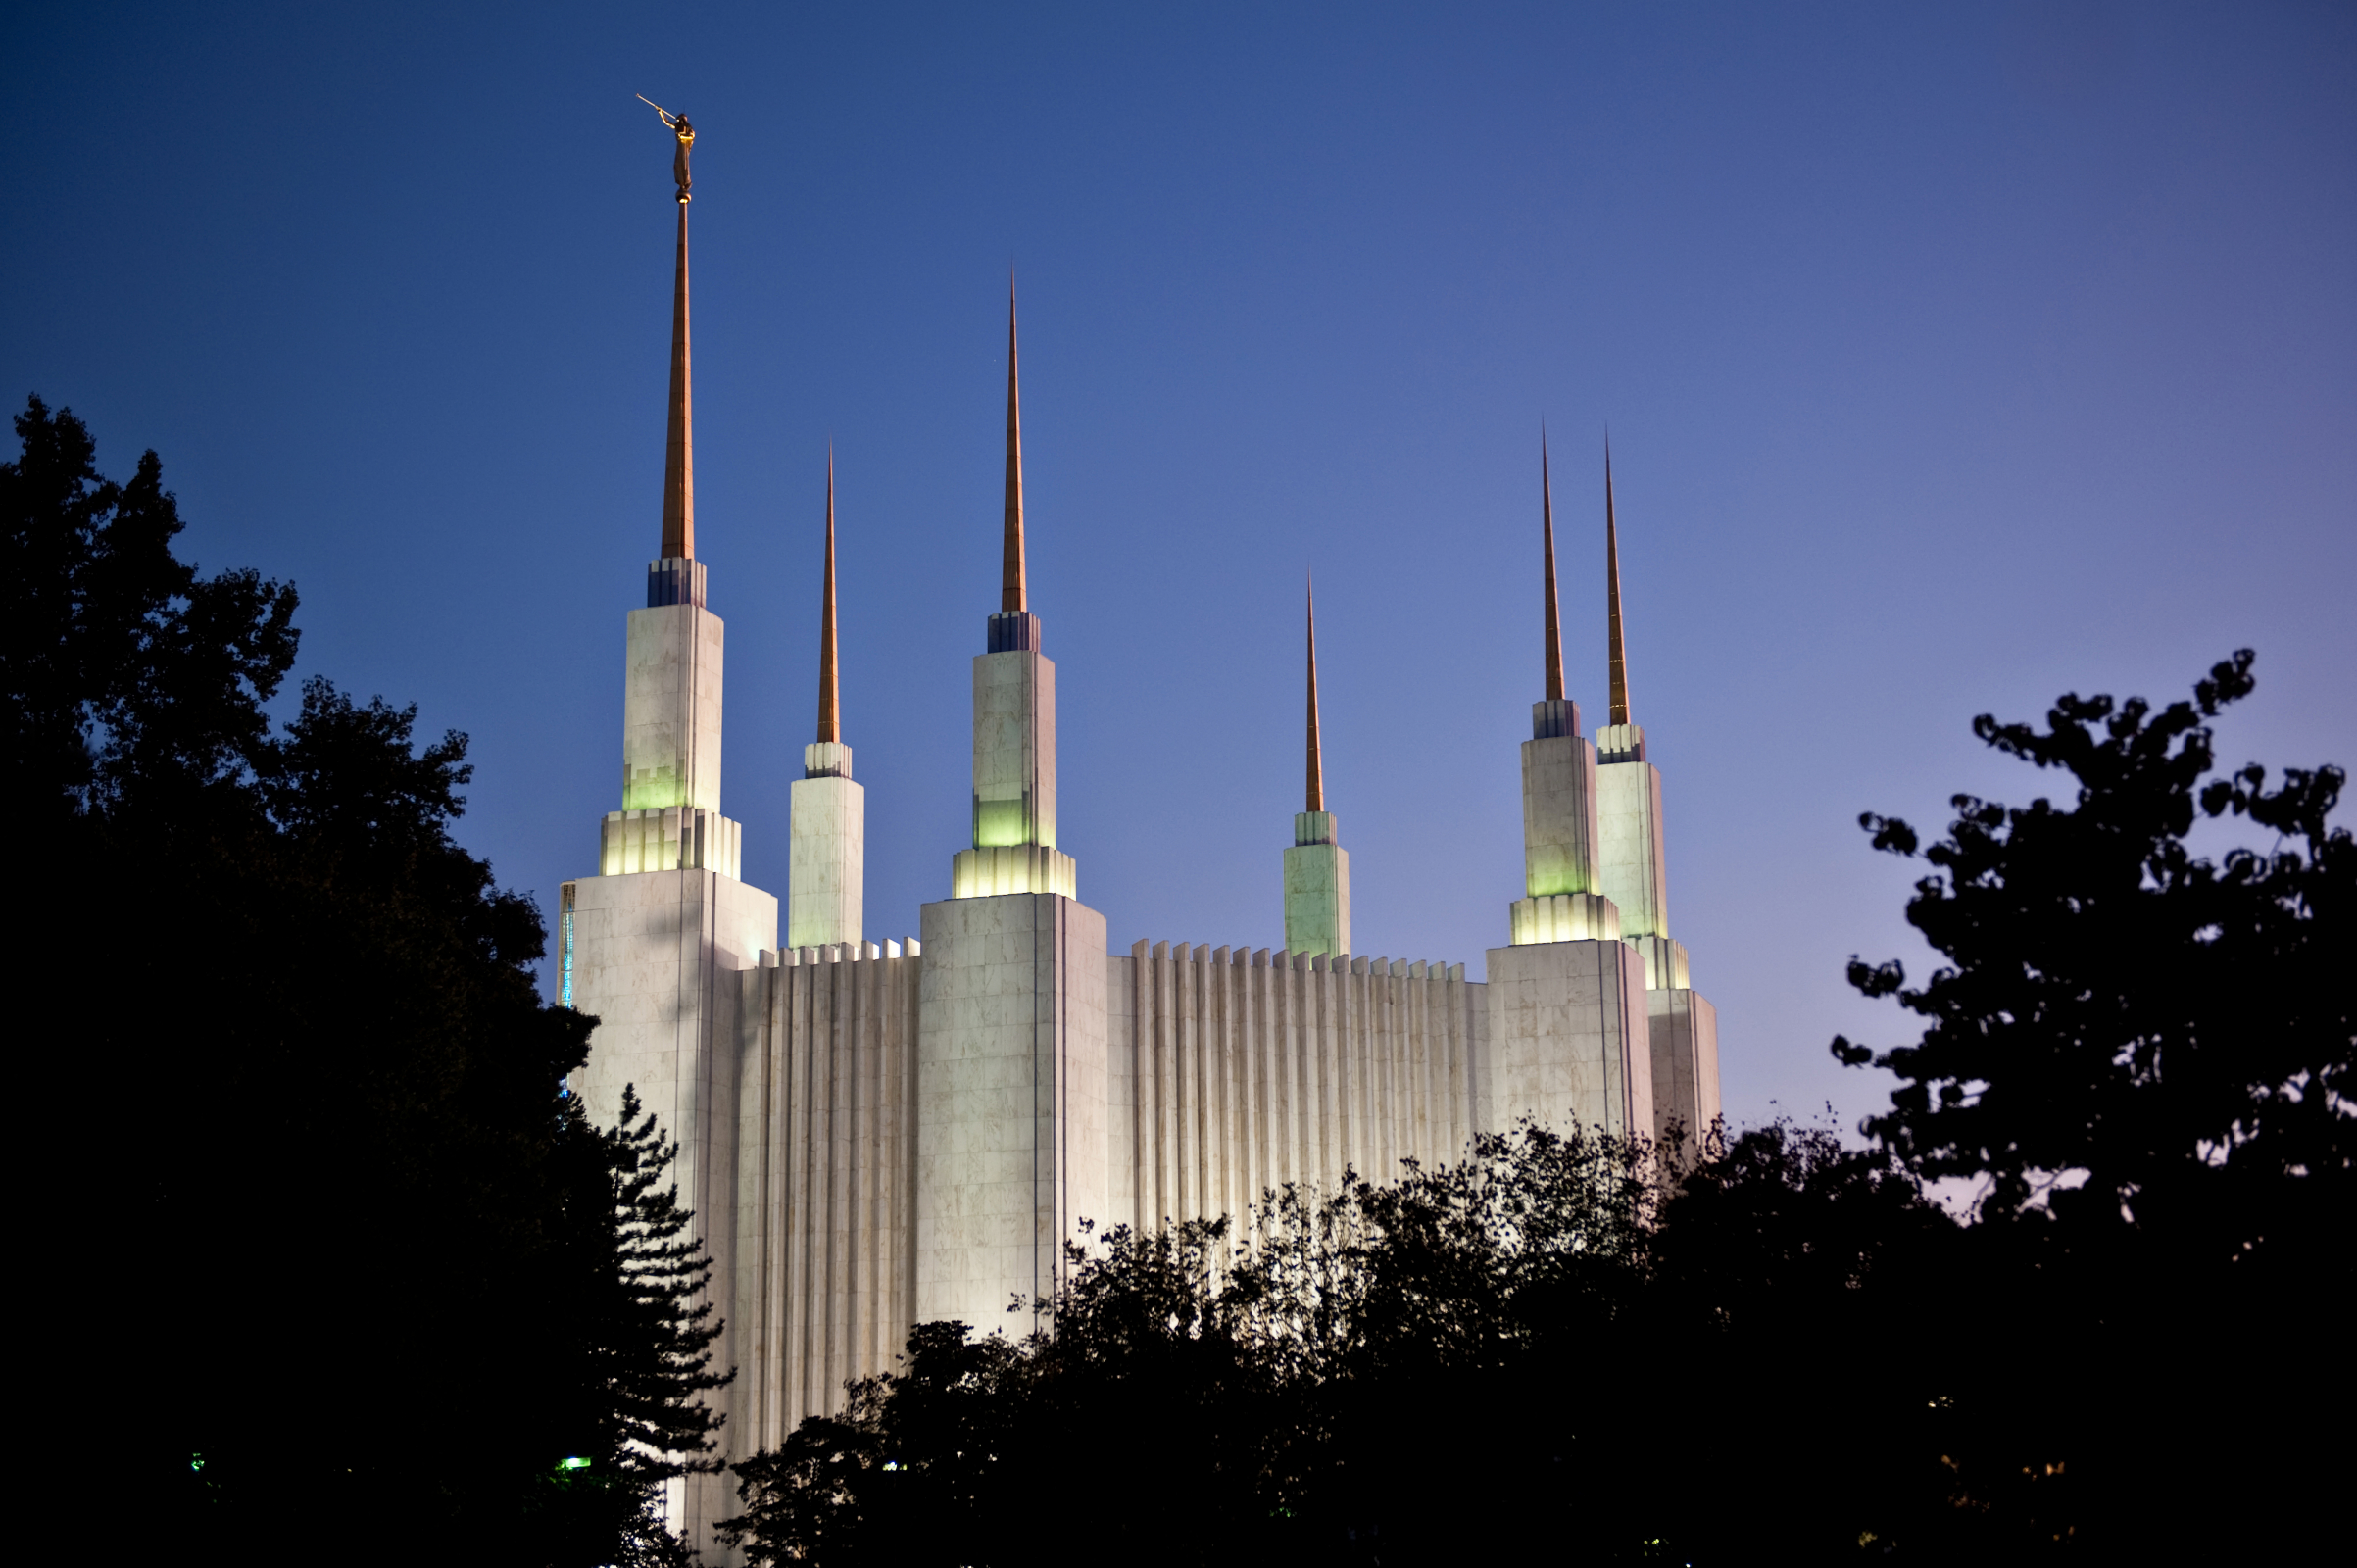 washington d.c. temple in the evening